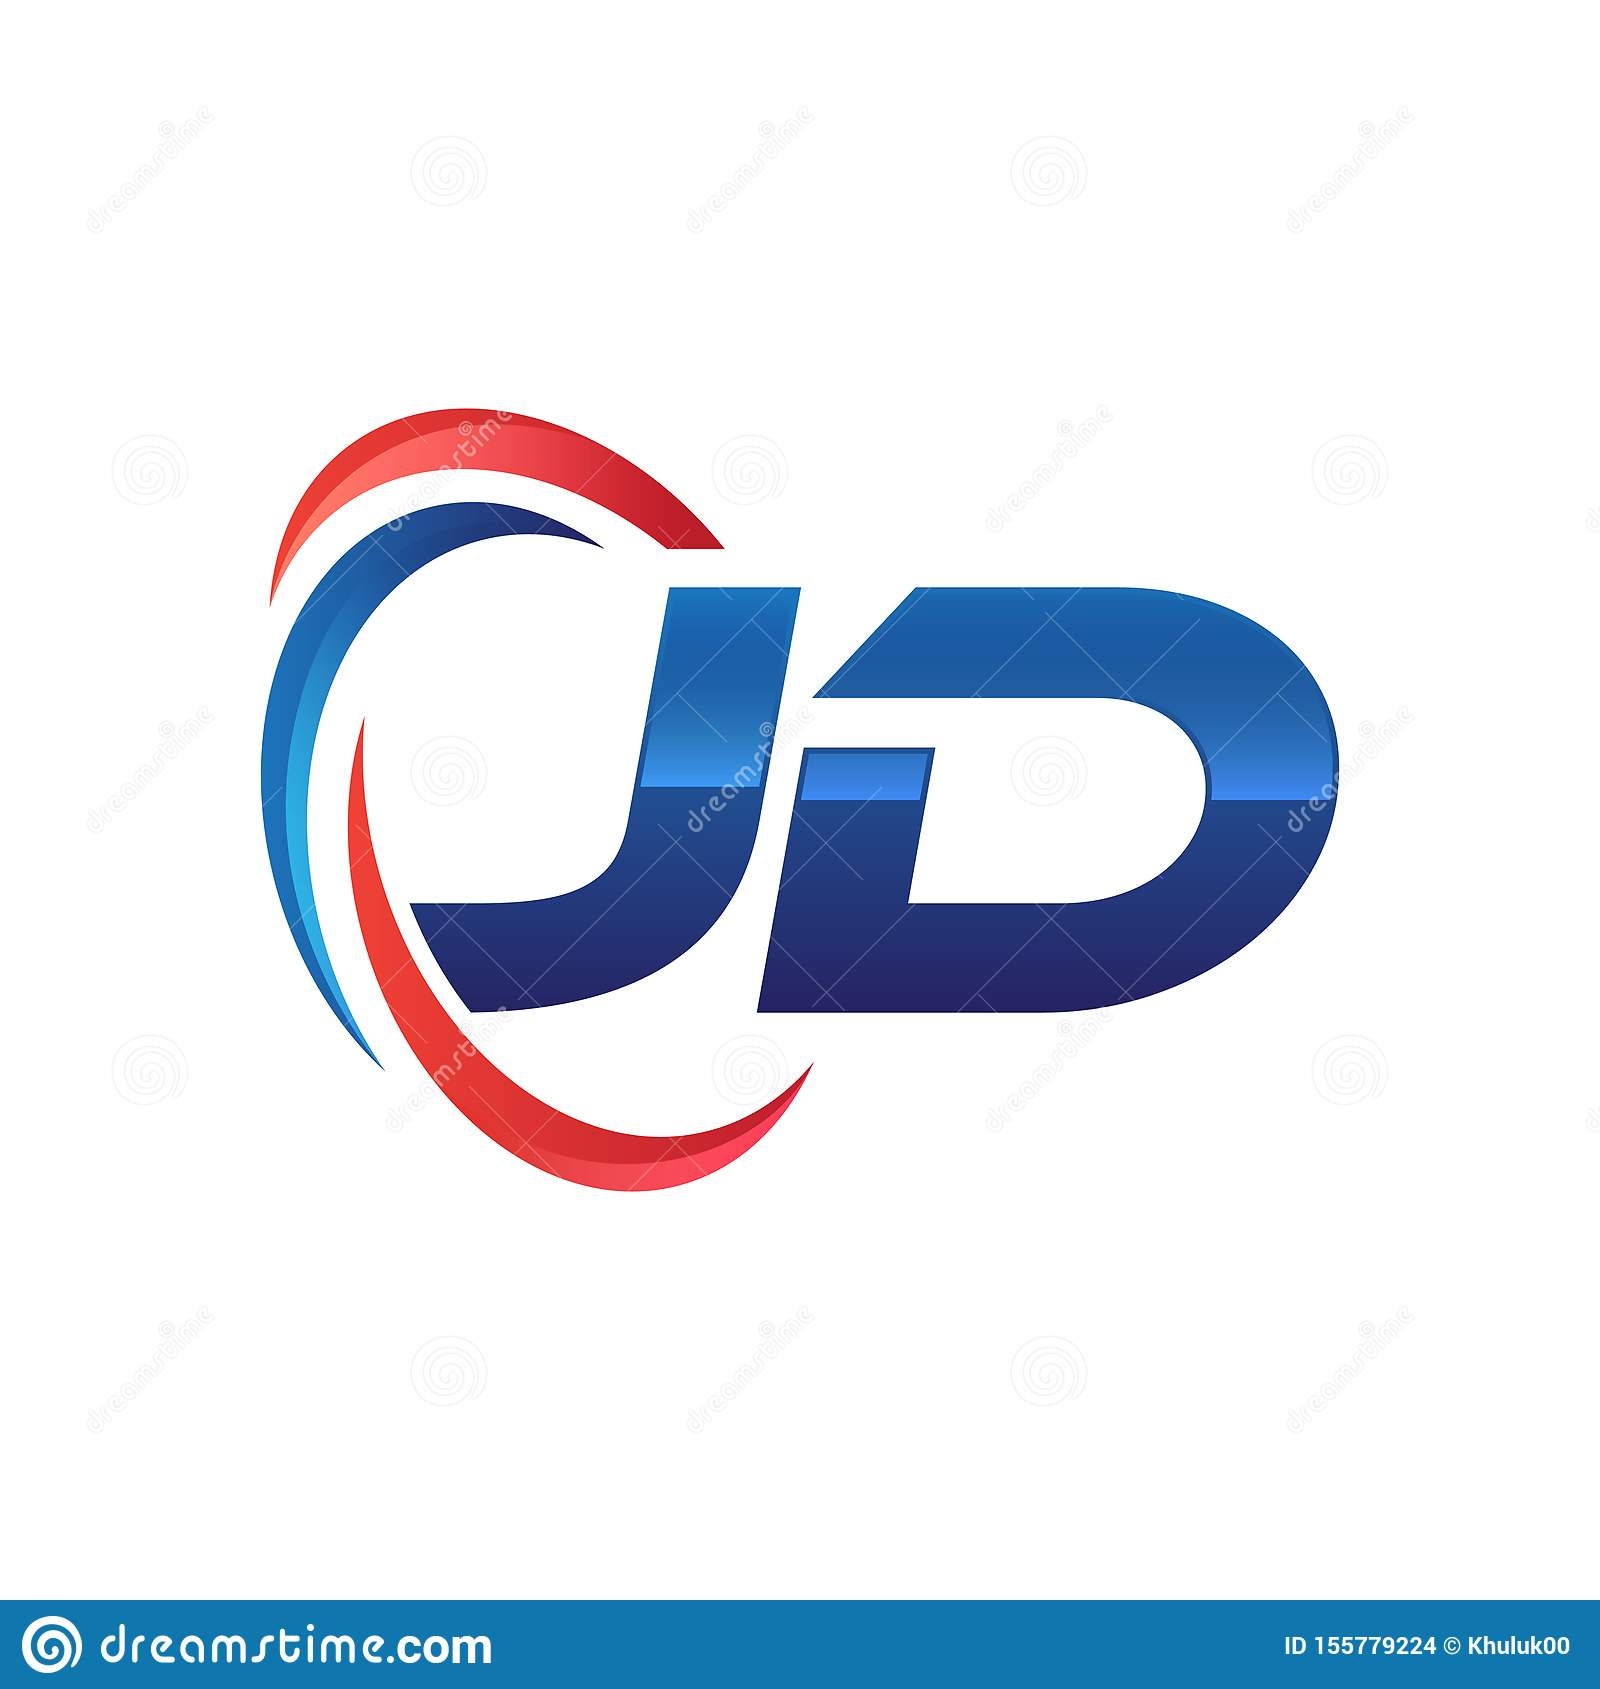 initial letter jd logo swoosh red and blue stock vector illustration of protect color 155779224 https www dreamstime com initial letter logo swoosh red blue ad to zd image155779224